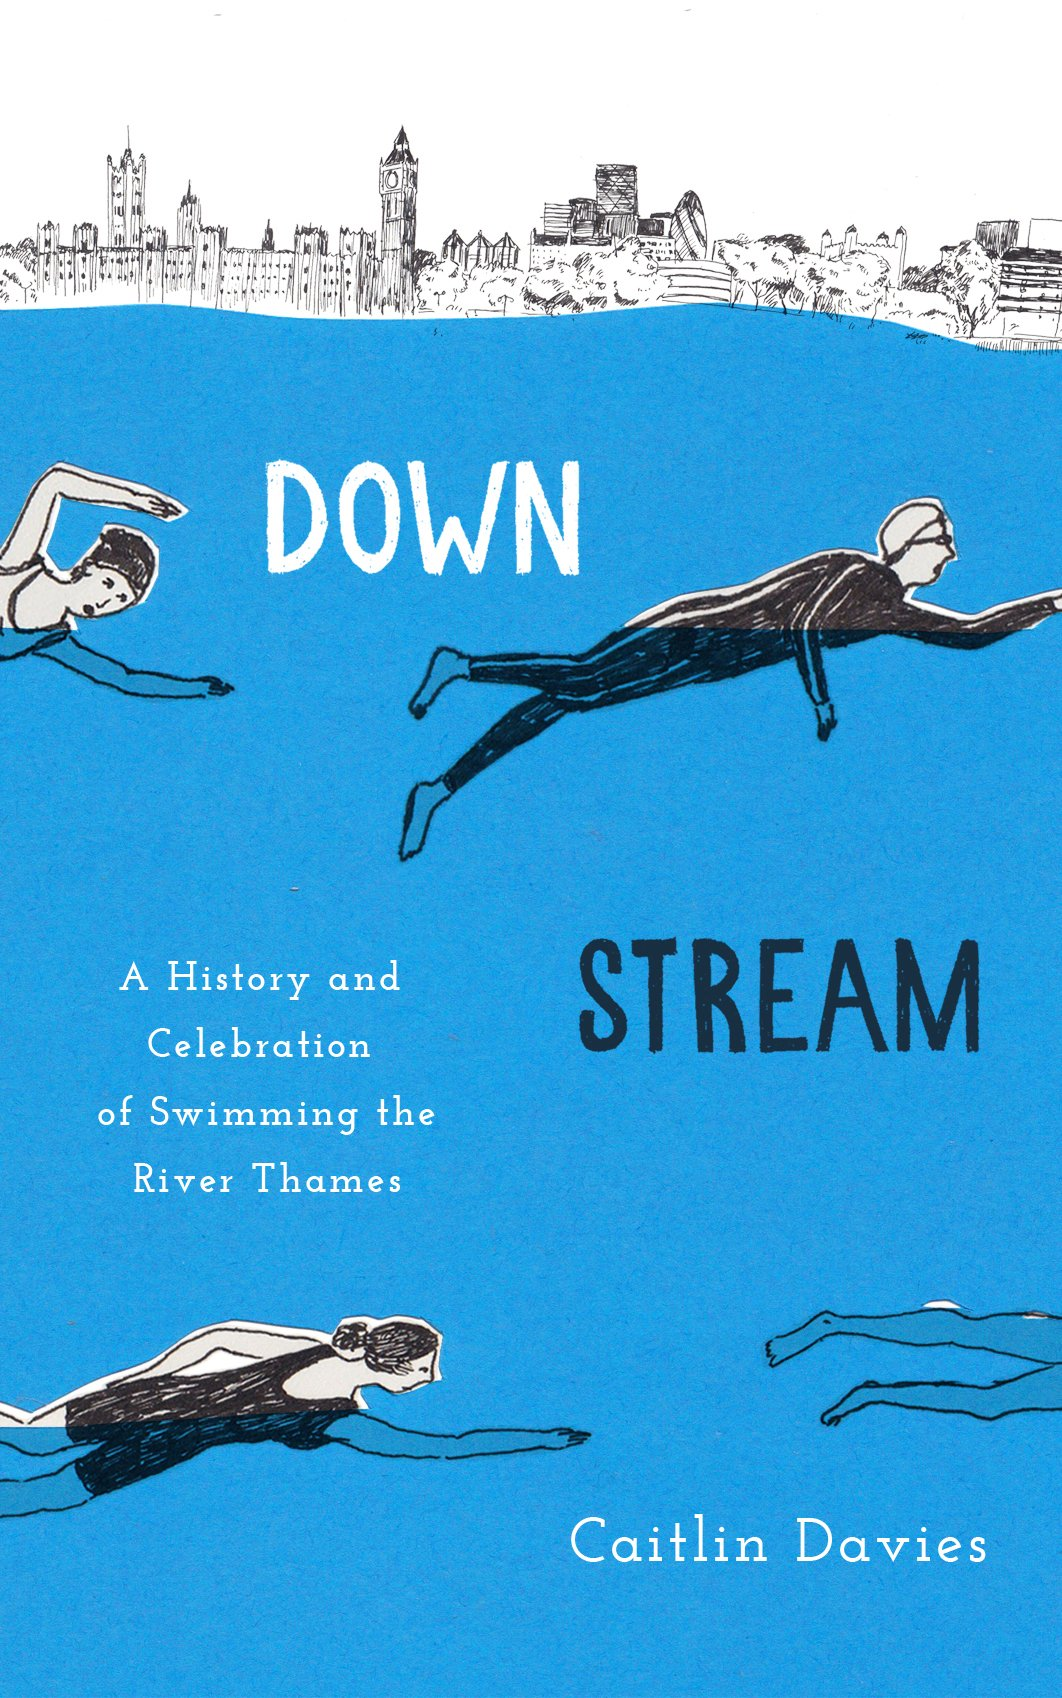 These remarkable stories of swimming in the Thames offer a watery take on history